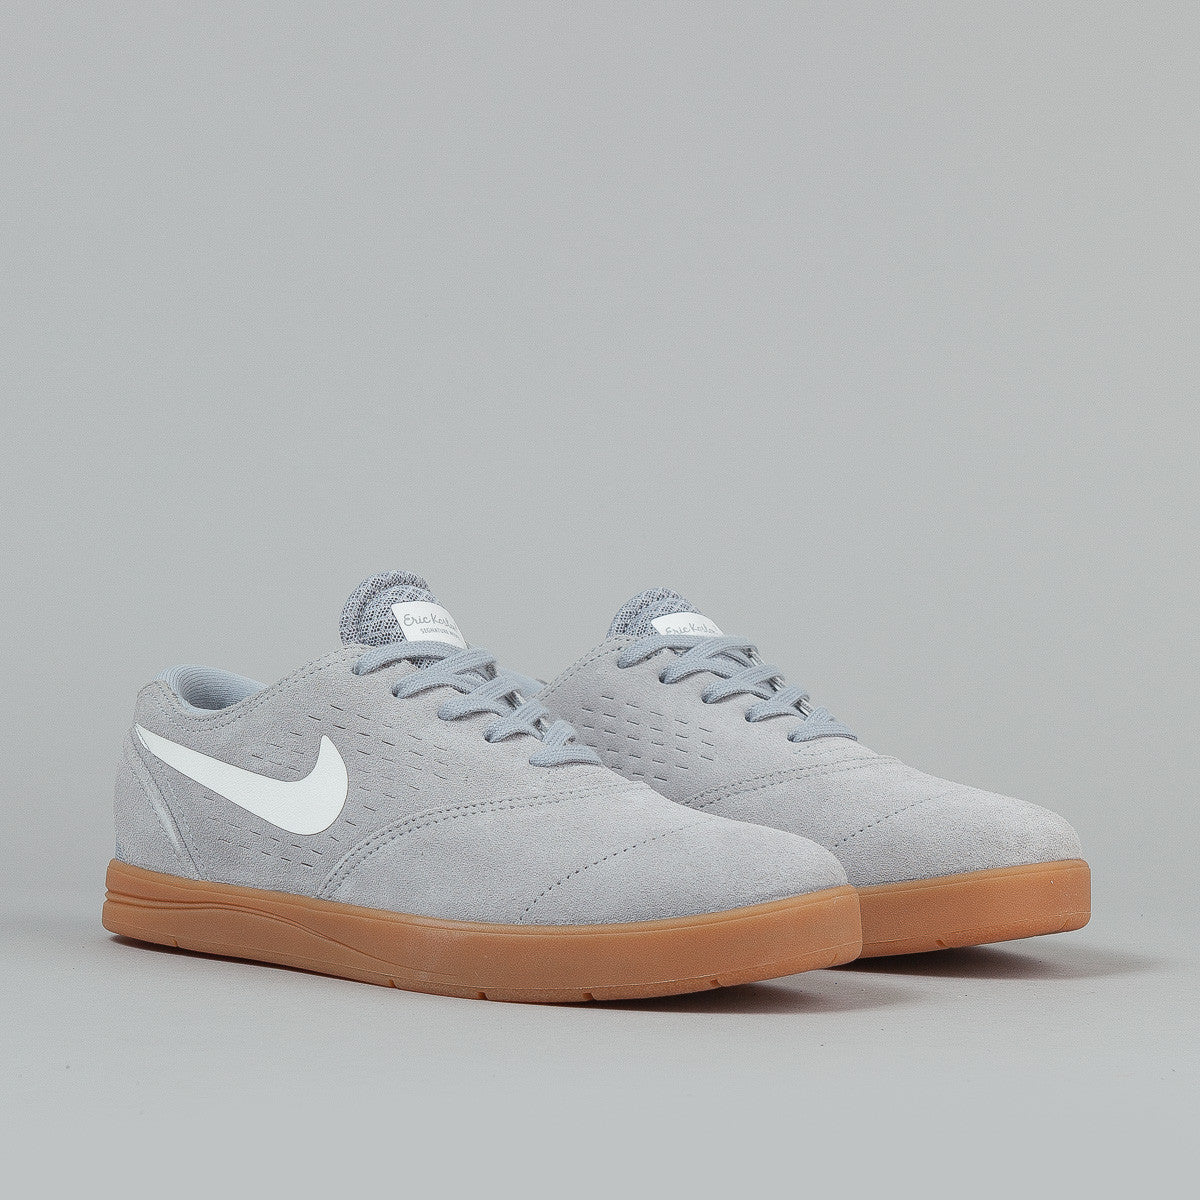 Nike SB Eric Koston 2 Shoes - Wolf Grey / White / Gum Medium Brown